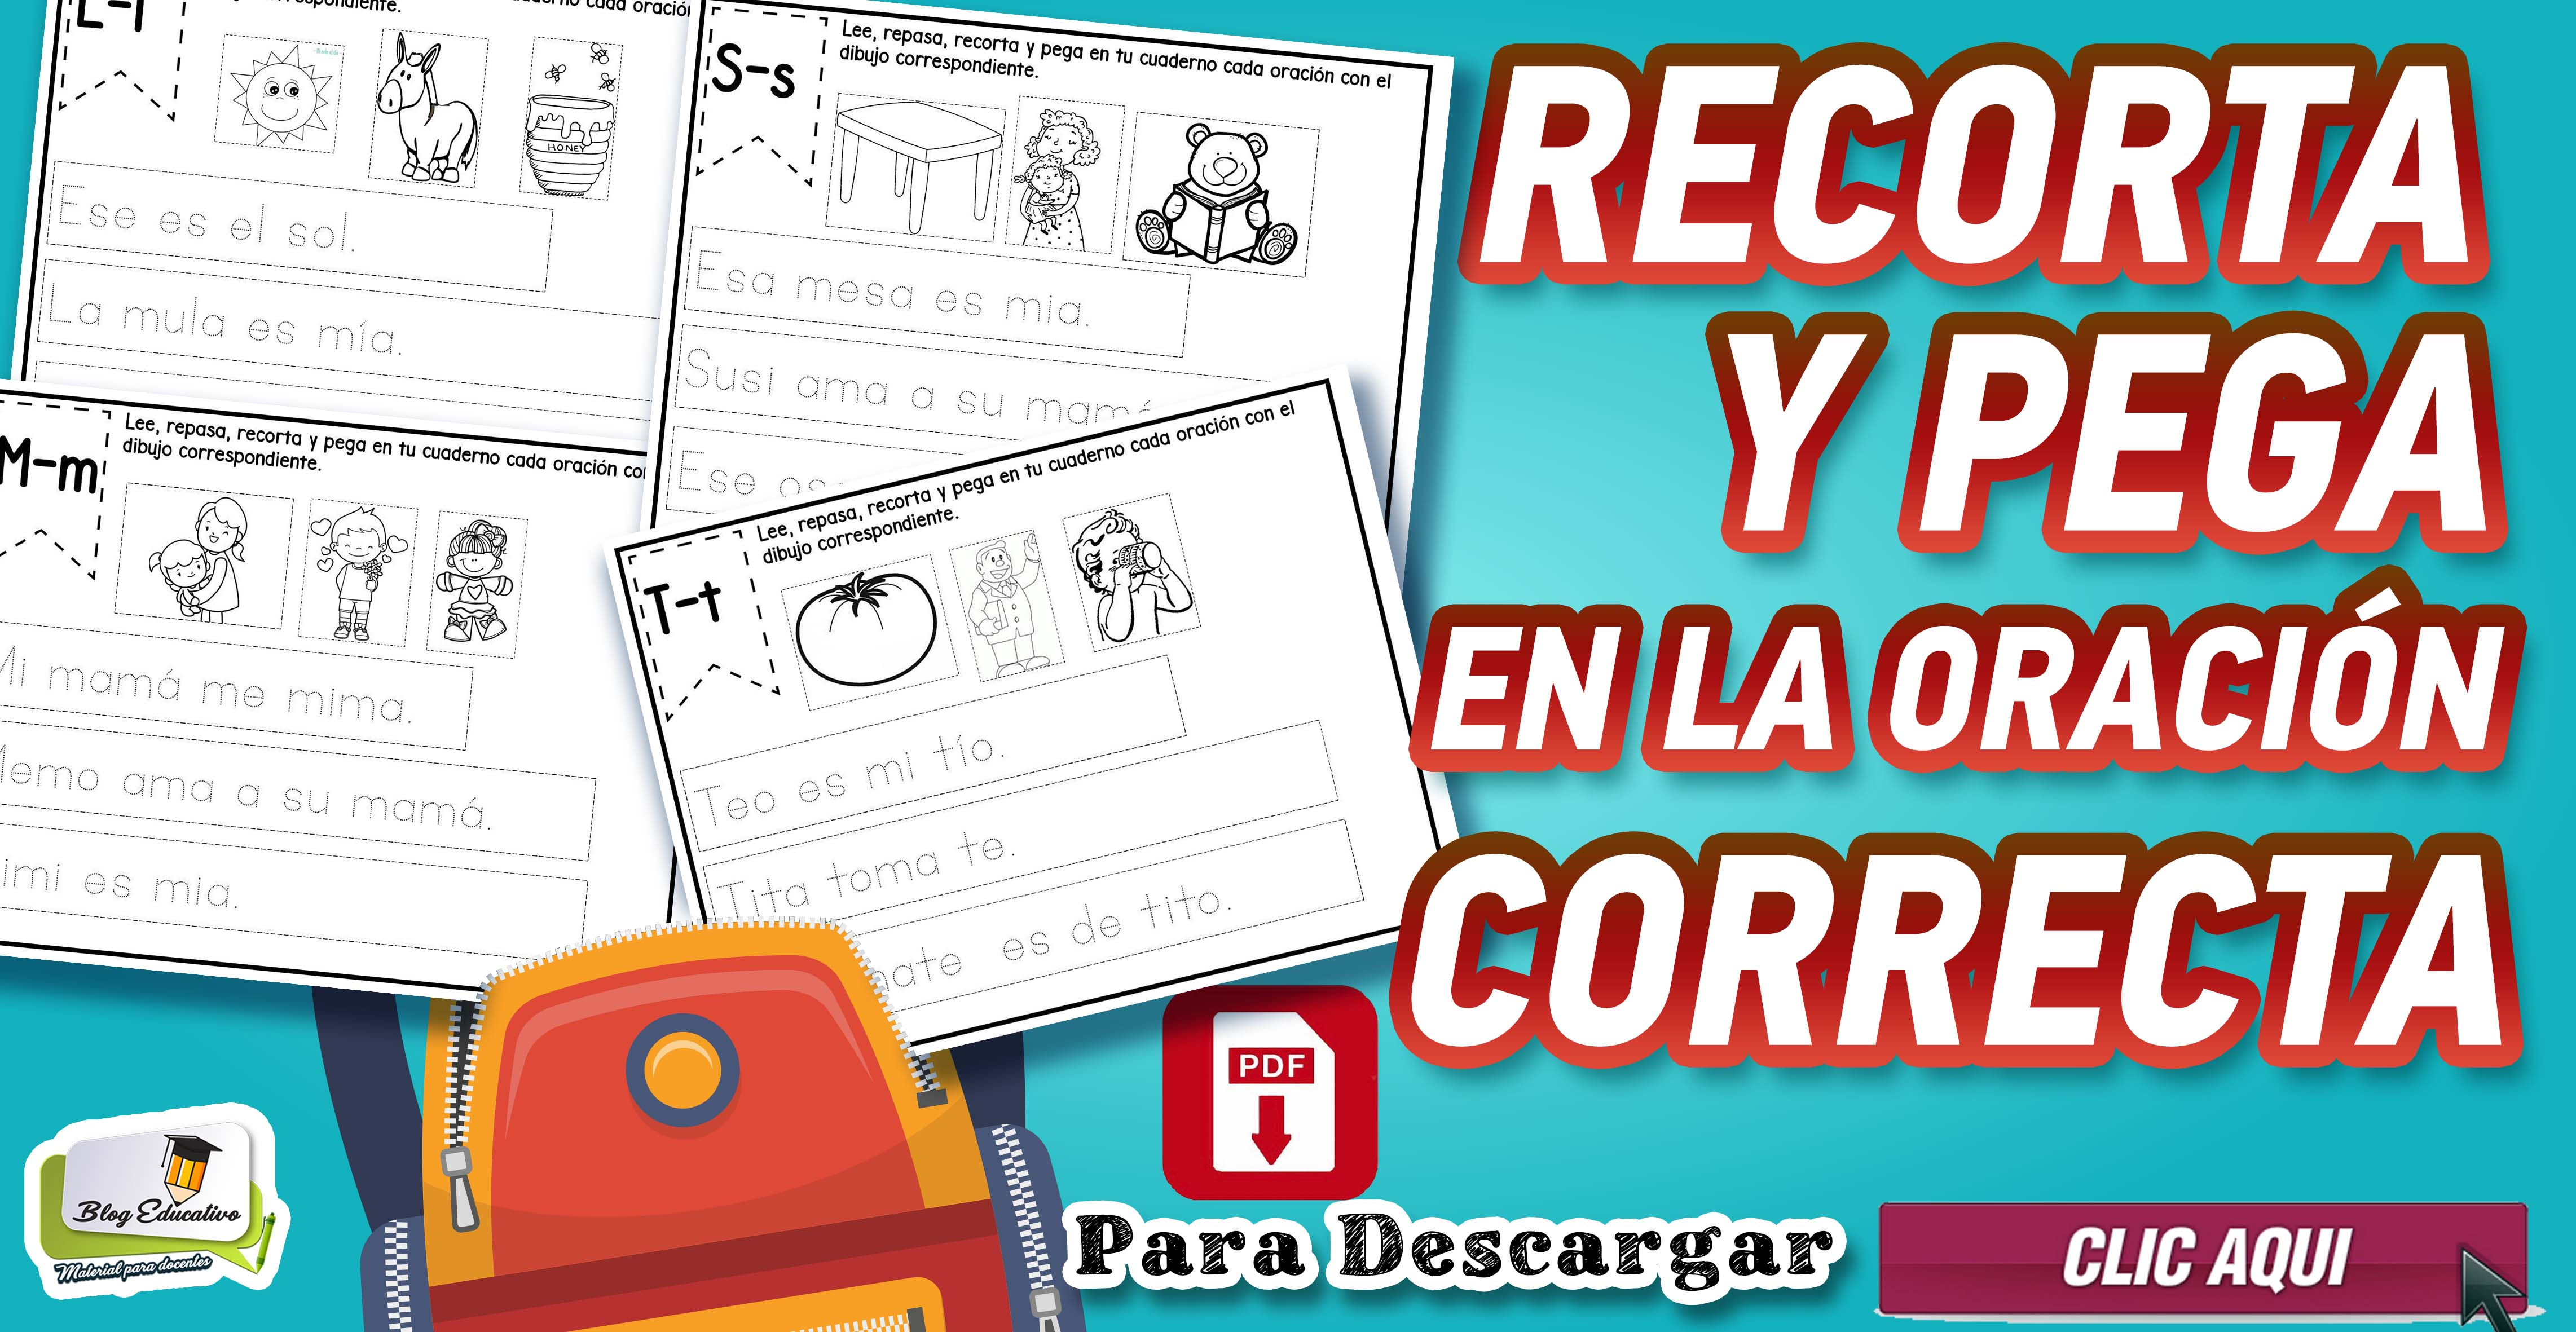 Recorta y pega en la oración Correcta - Blog educativo